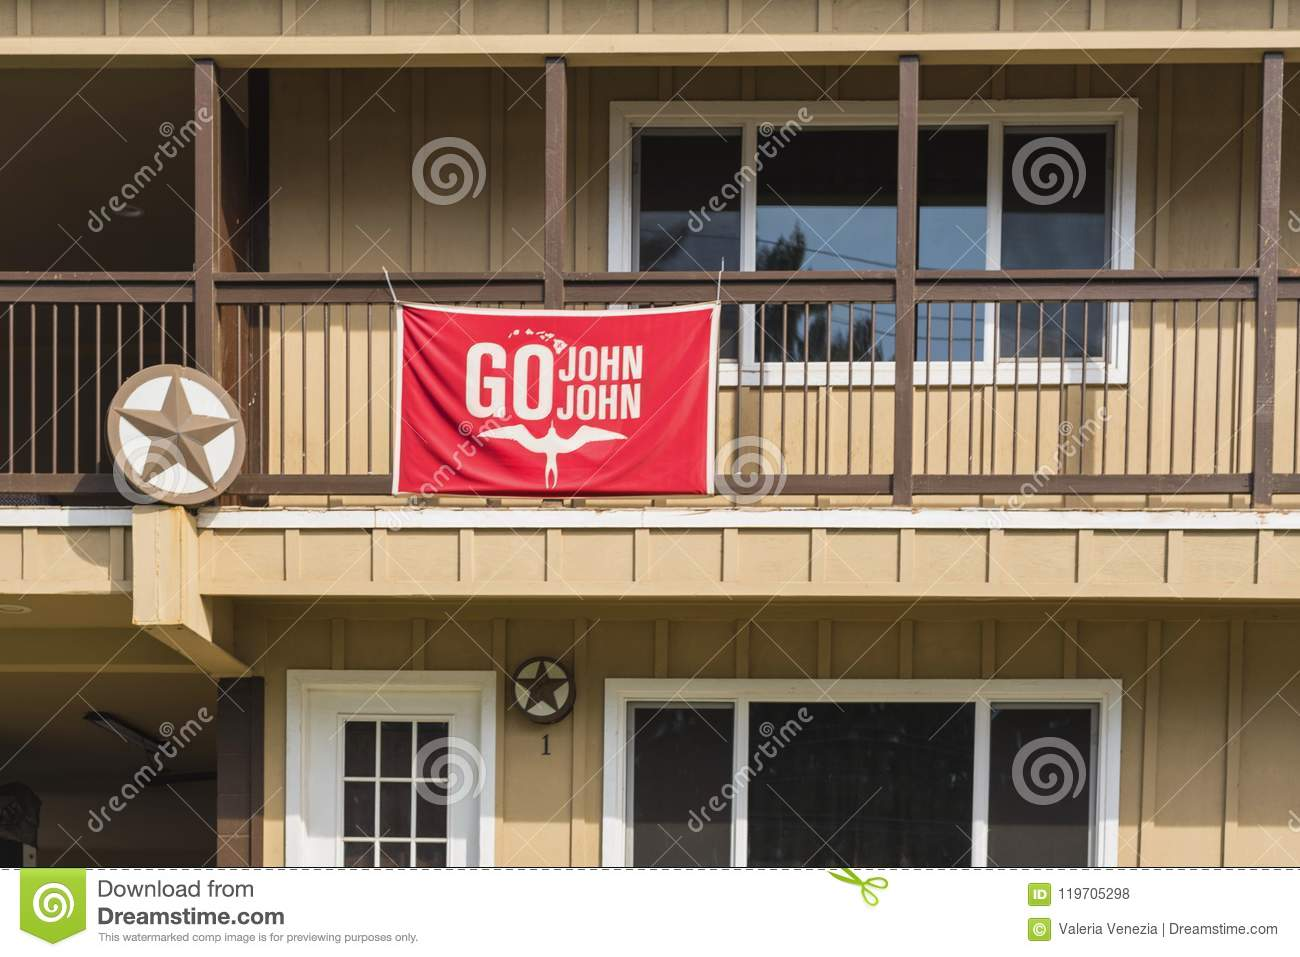 Oahu, Hawaii / United States - February 21 2018: The Go John John flag